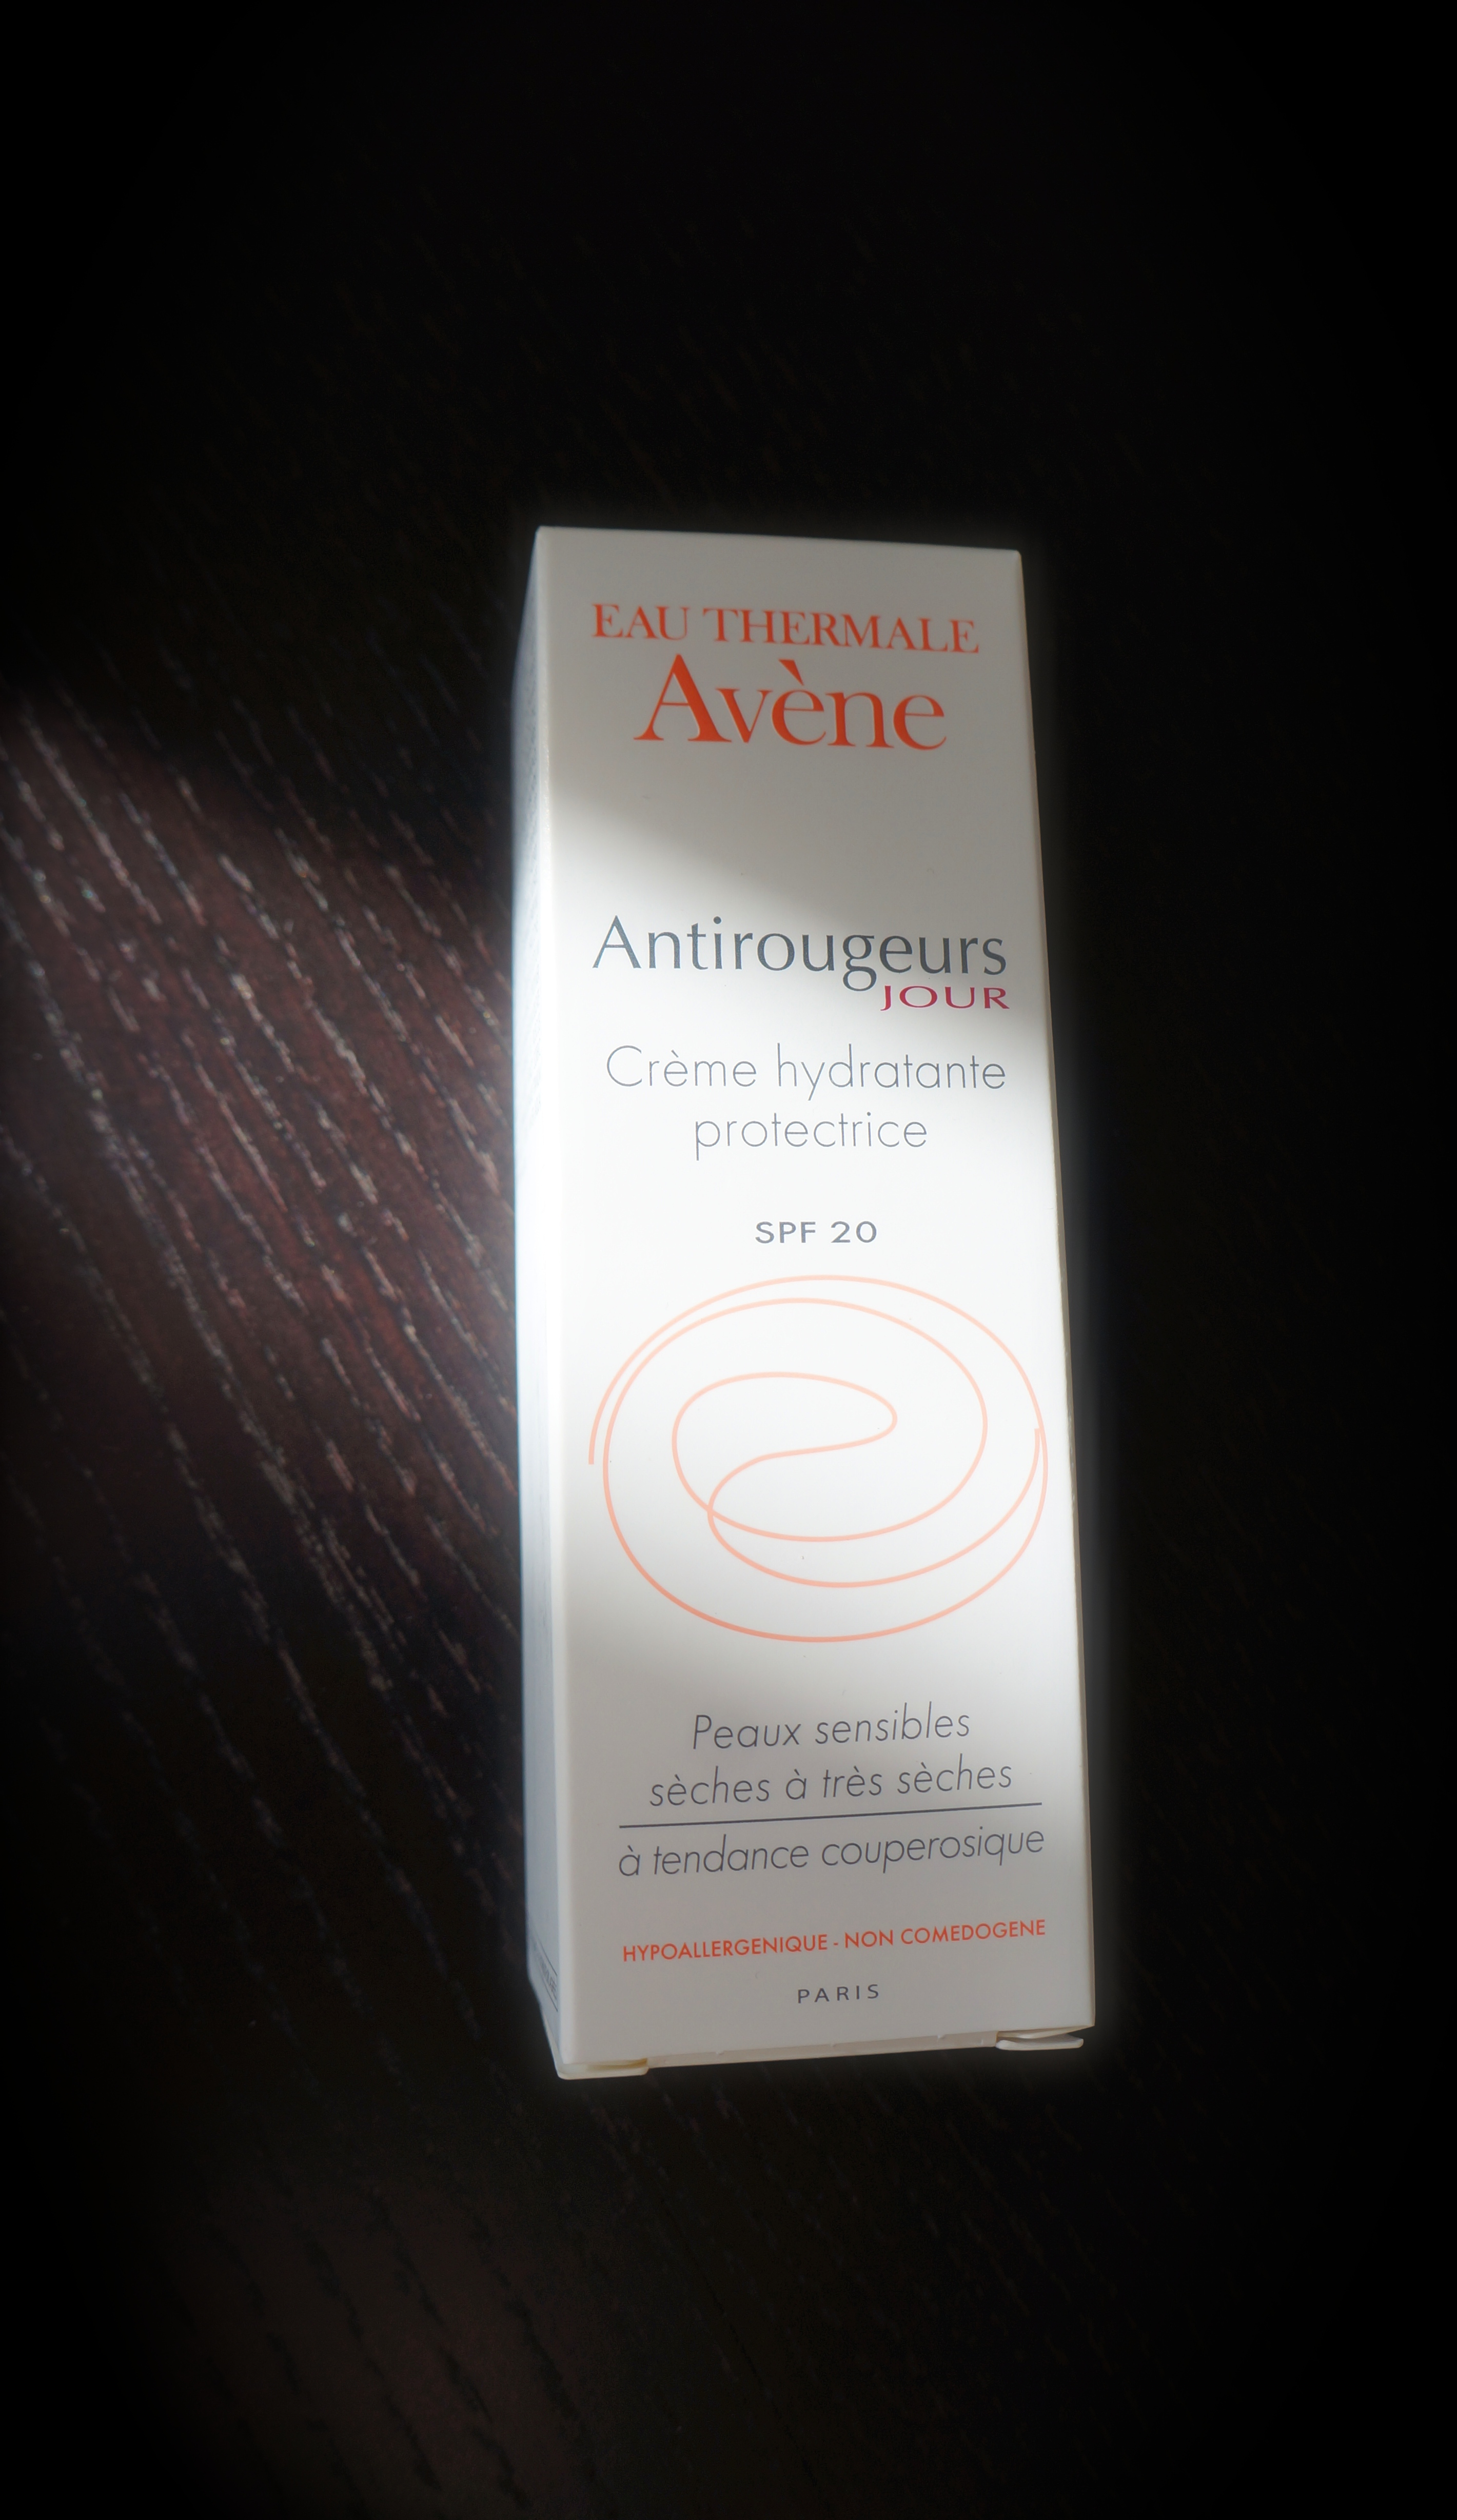 Avène Anti-Rougeurs Jour Crème hydratante protectrice SPF 20/ Pic by kiwikoo.